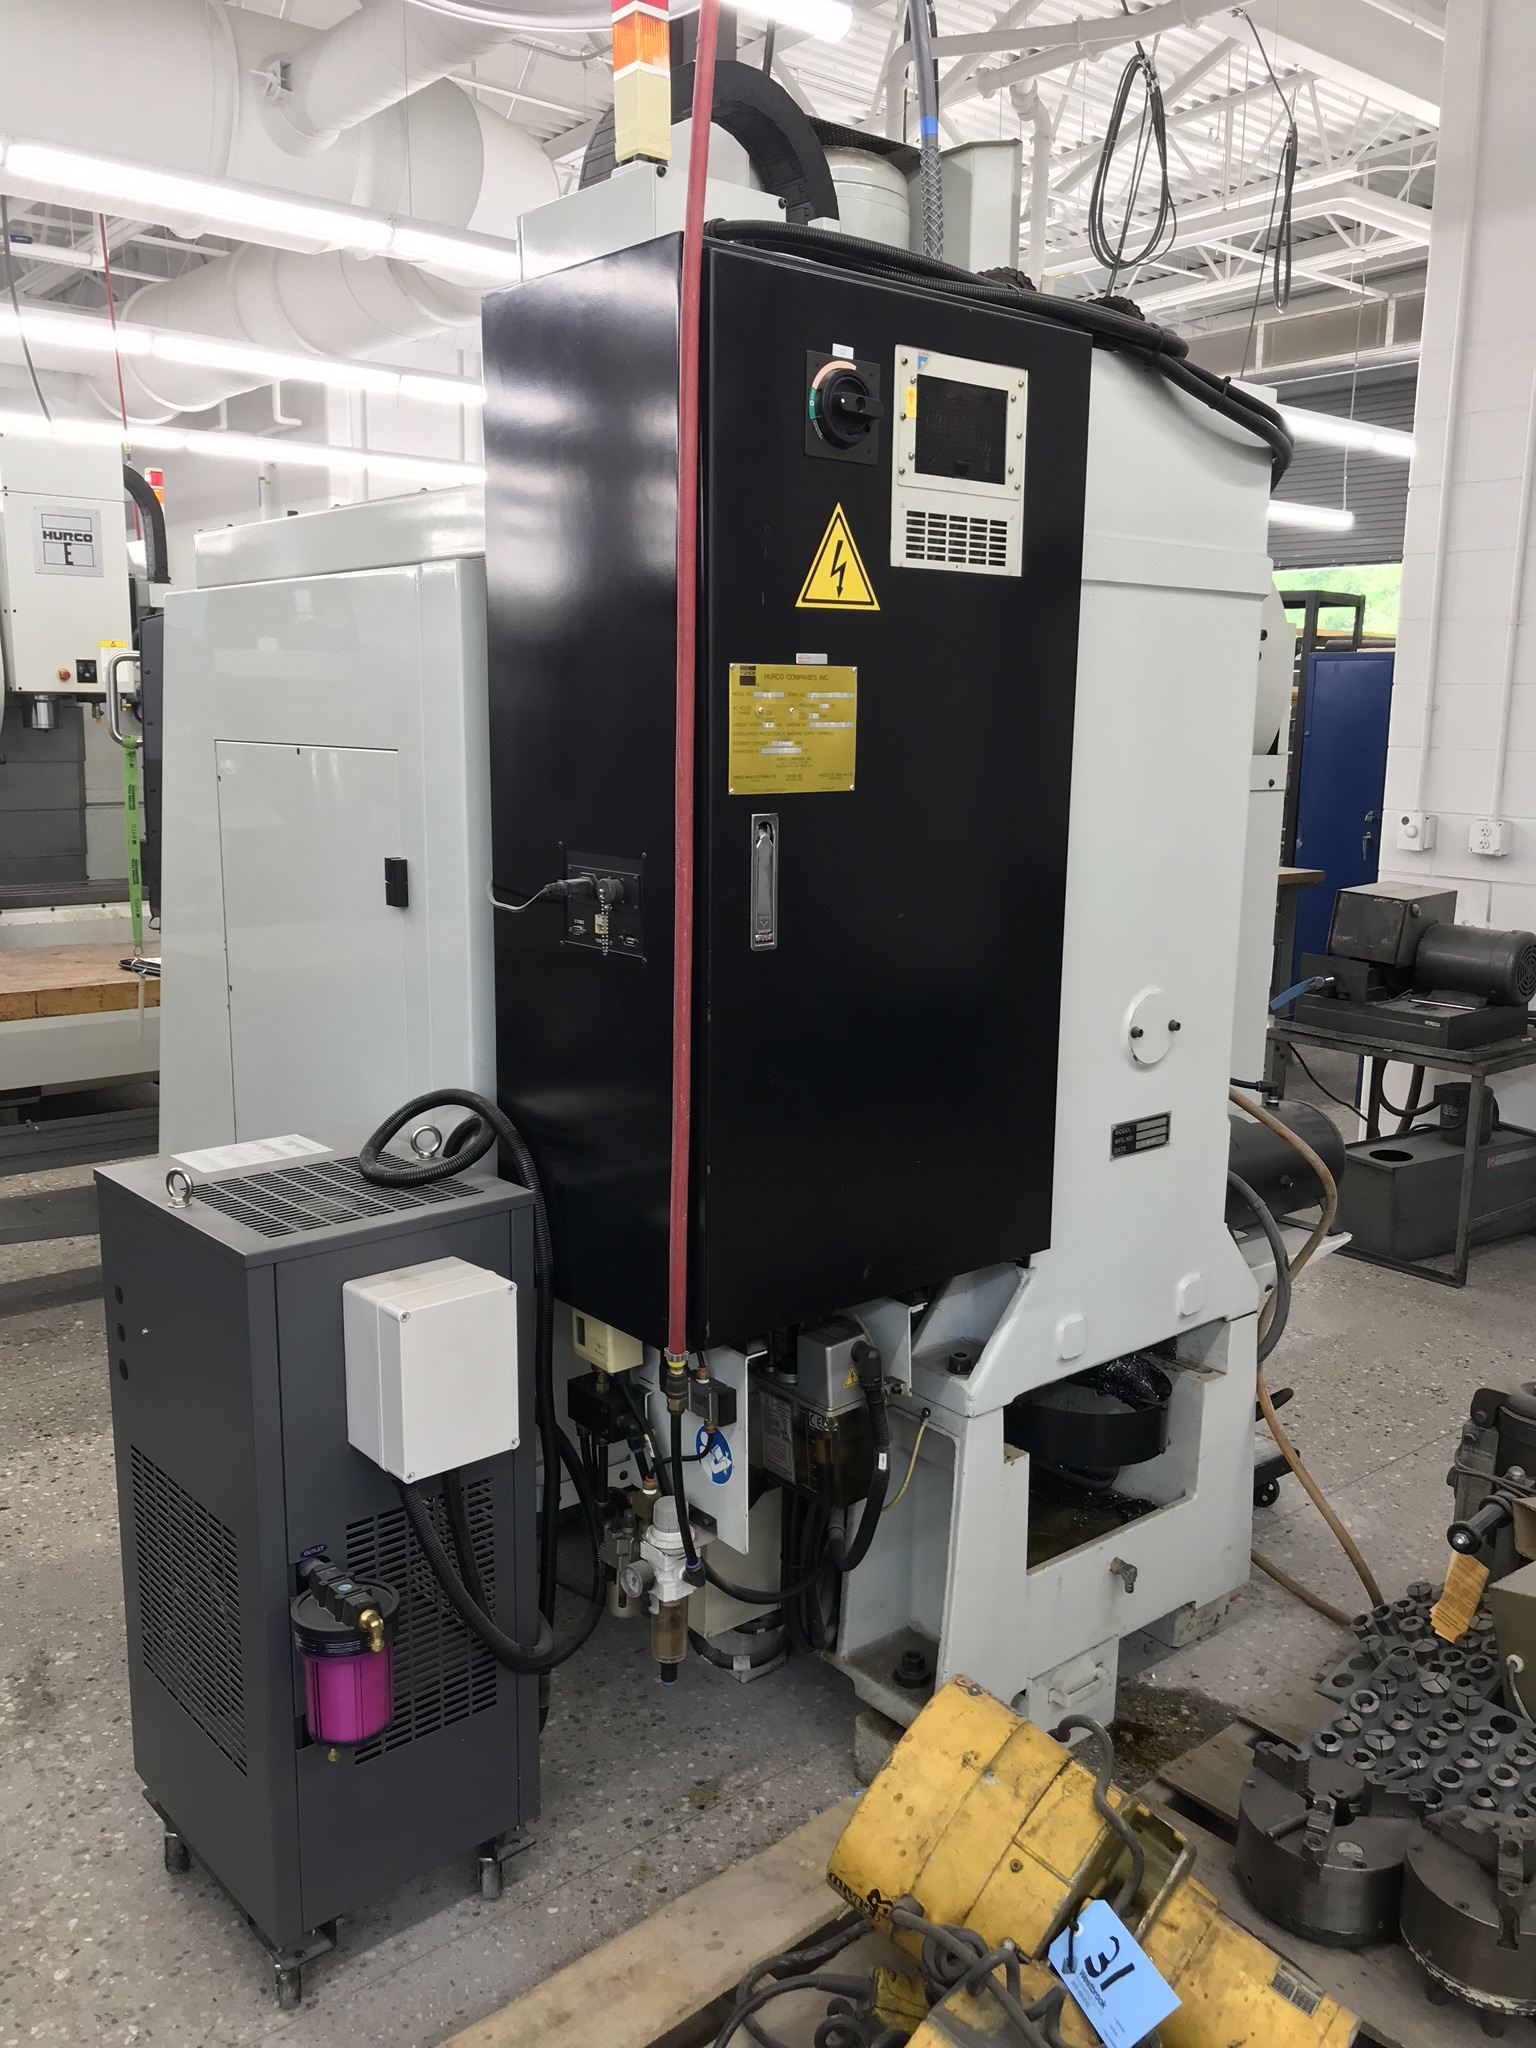 Hurco VM-1 CNC Vertical Machining Center, Spindle Recently Replaced, Approx 6,500 Hours, Max Control - Image 5 of 6